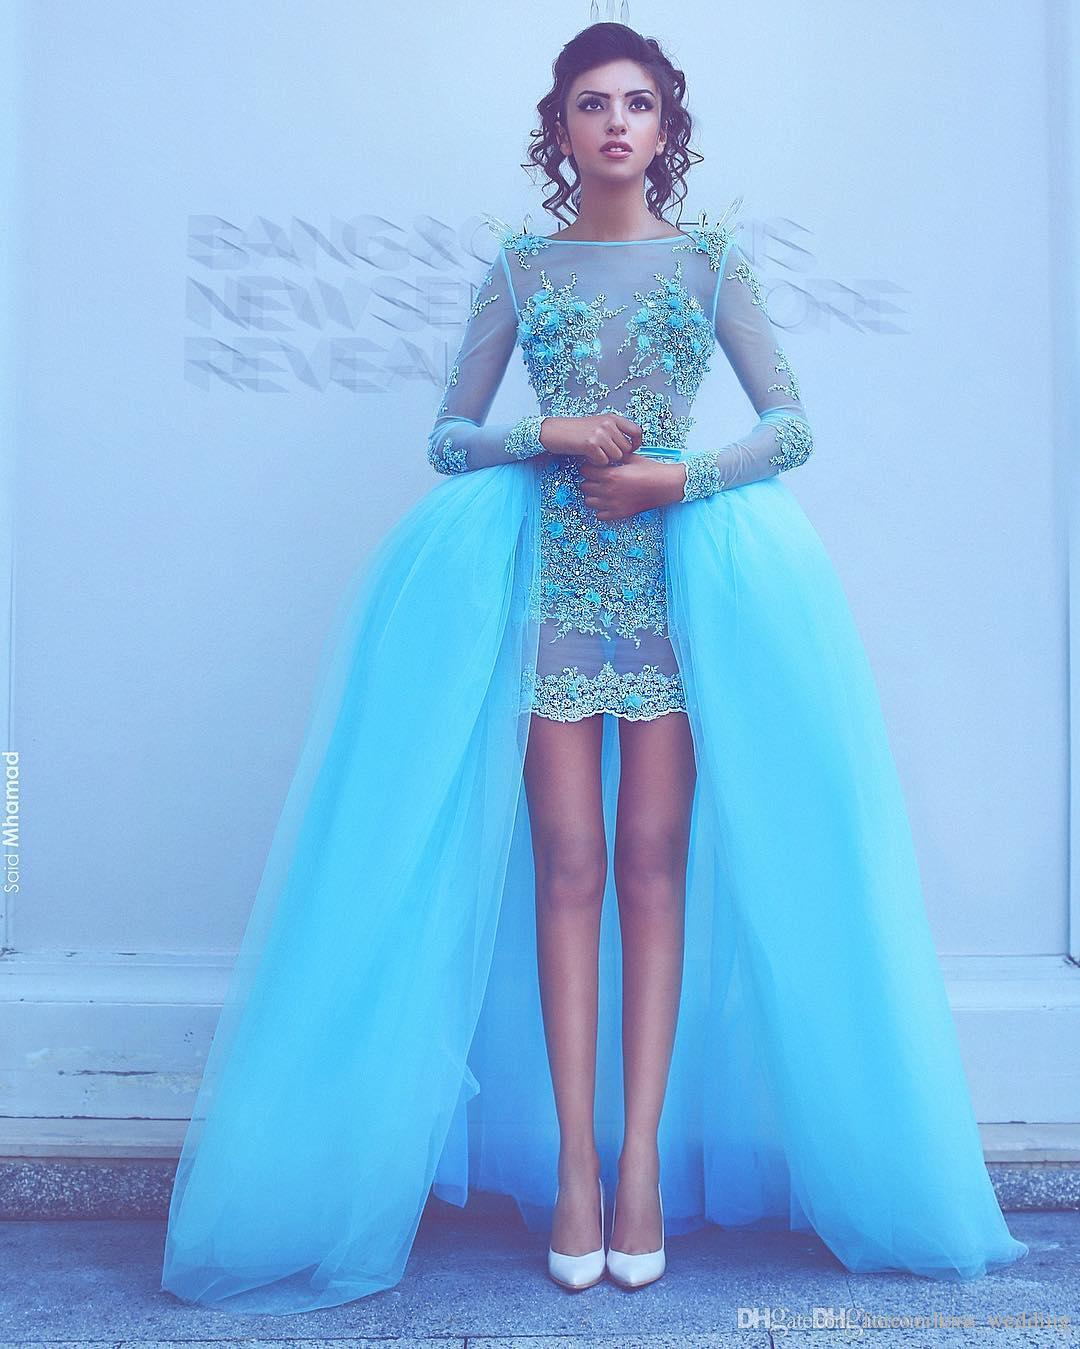 Hi-lo Prom Dresses With Detachable Train Tulle See Through Bateau Evening Dresses Formal Occasion Custom Made Tulle For Women's Dress